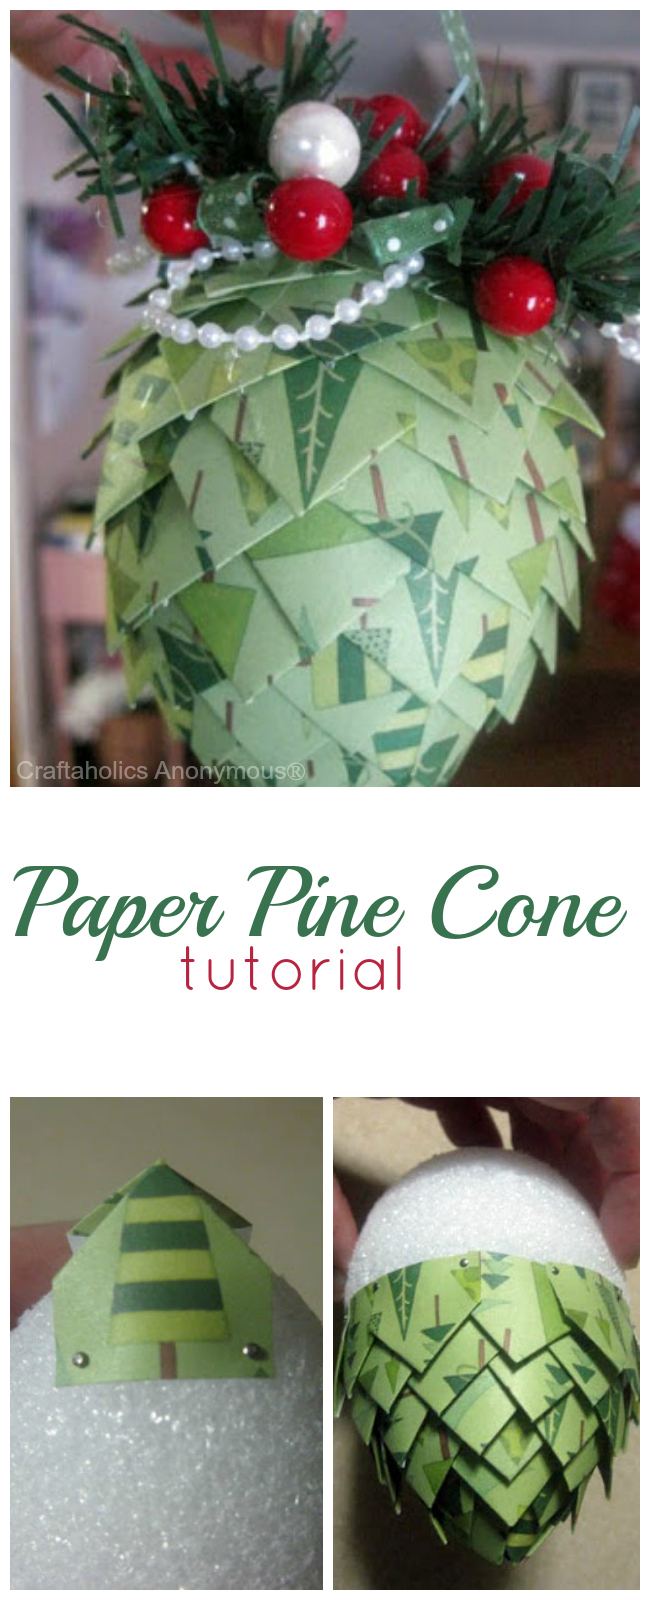 Wrapping paper pine cone